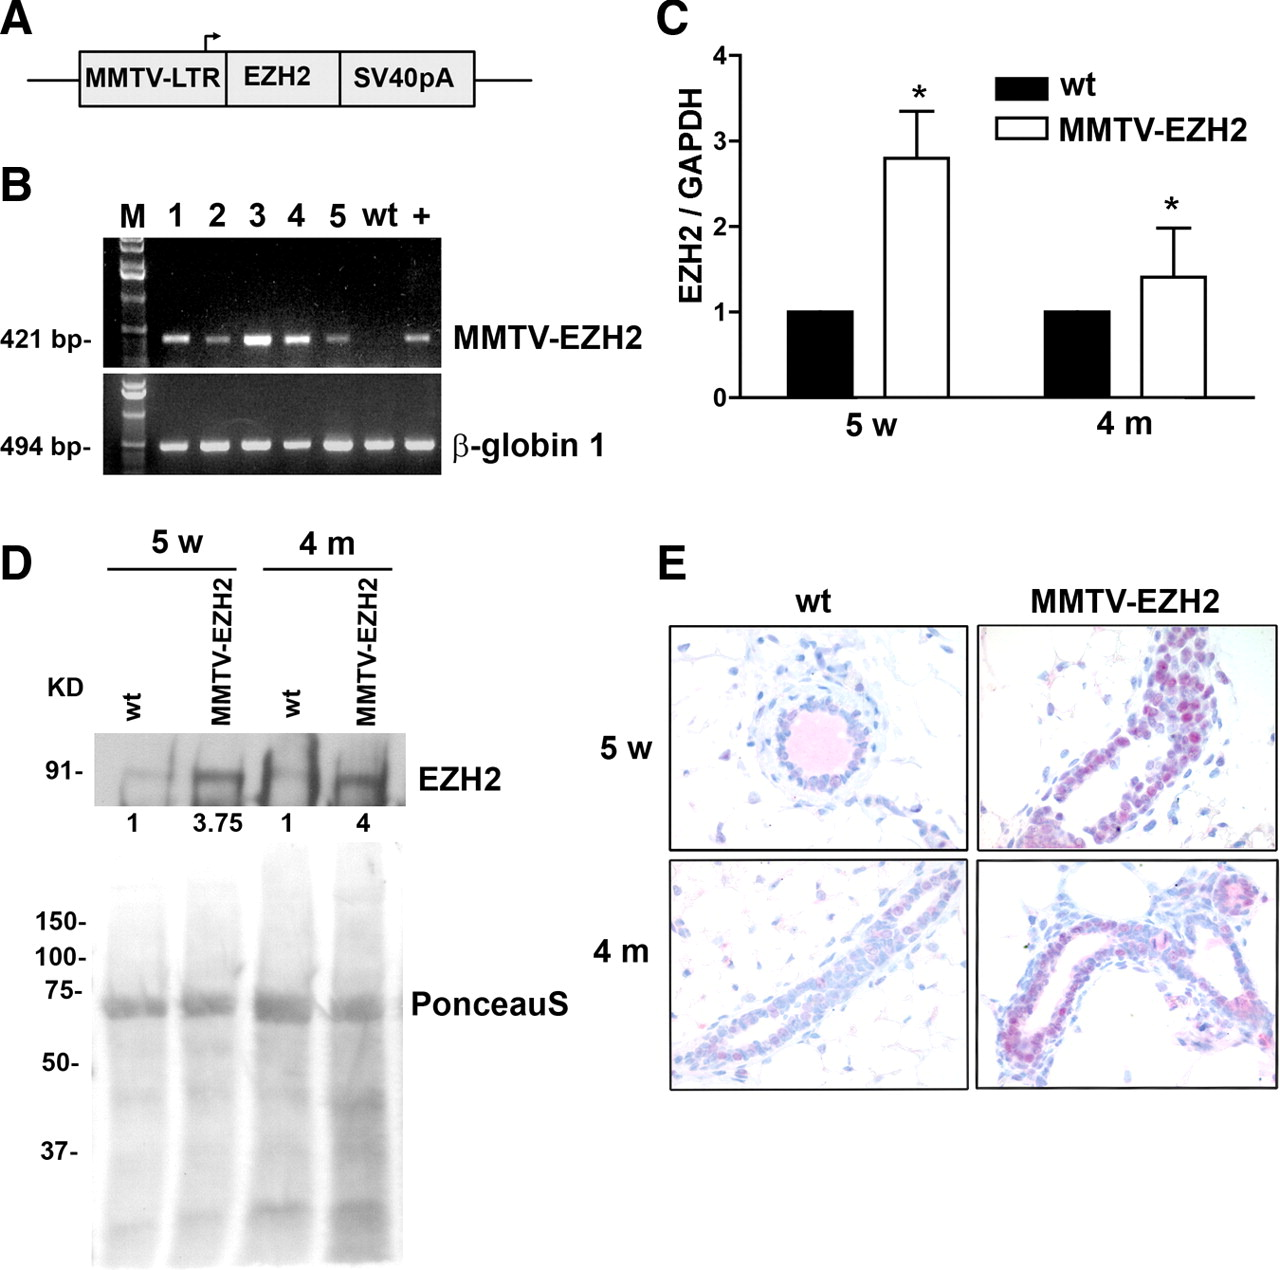 targeted overexpression of ezh2 in the mammary gland disrupts ductal